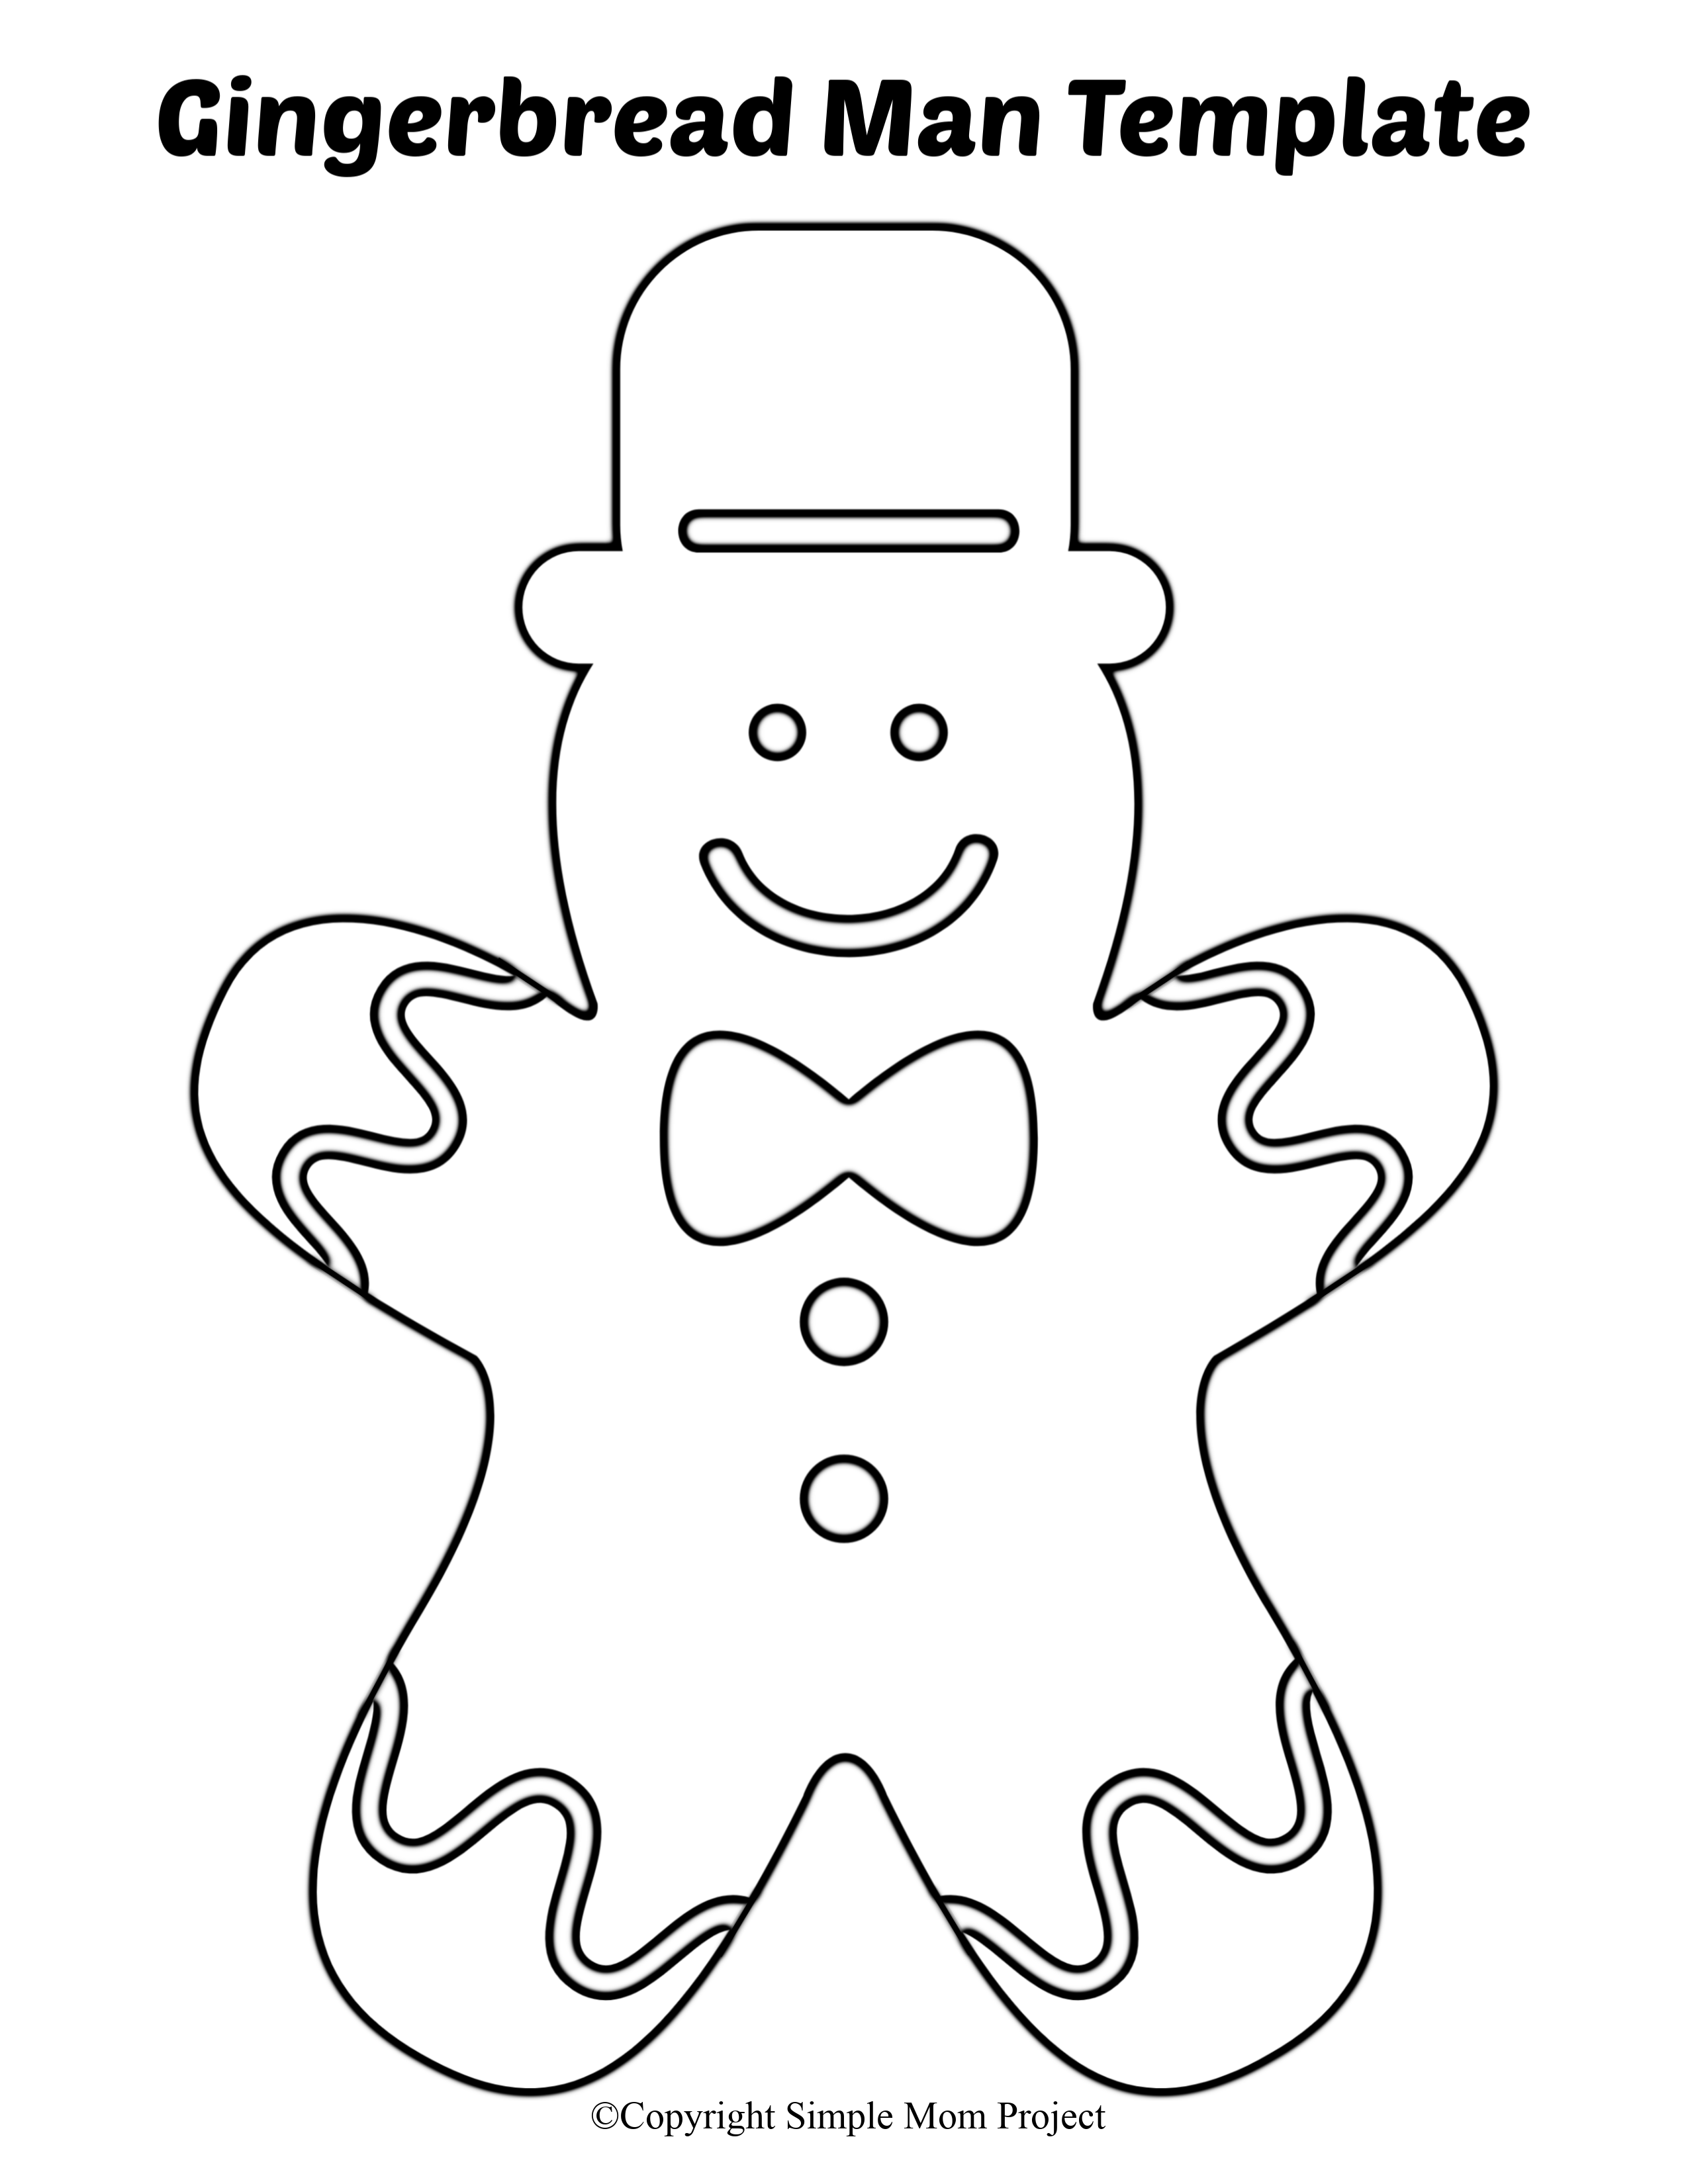 8 Free Printable Large and Small Gingerbread Man Templates ...